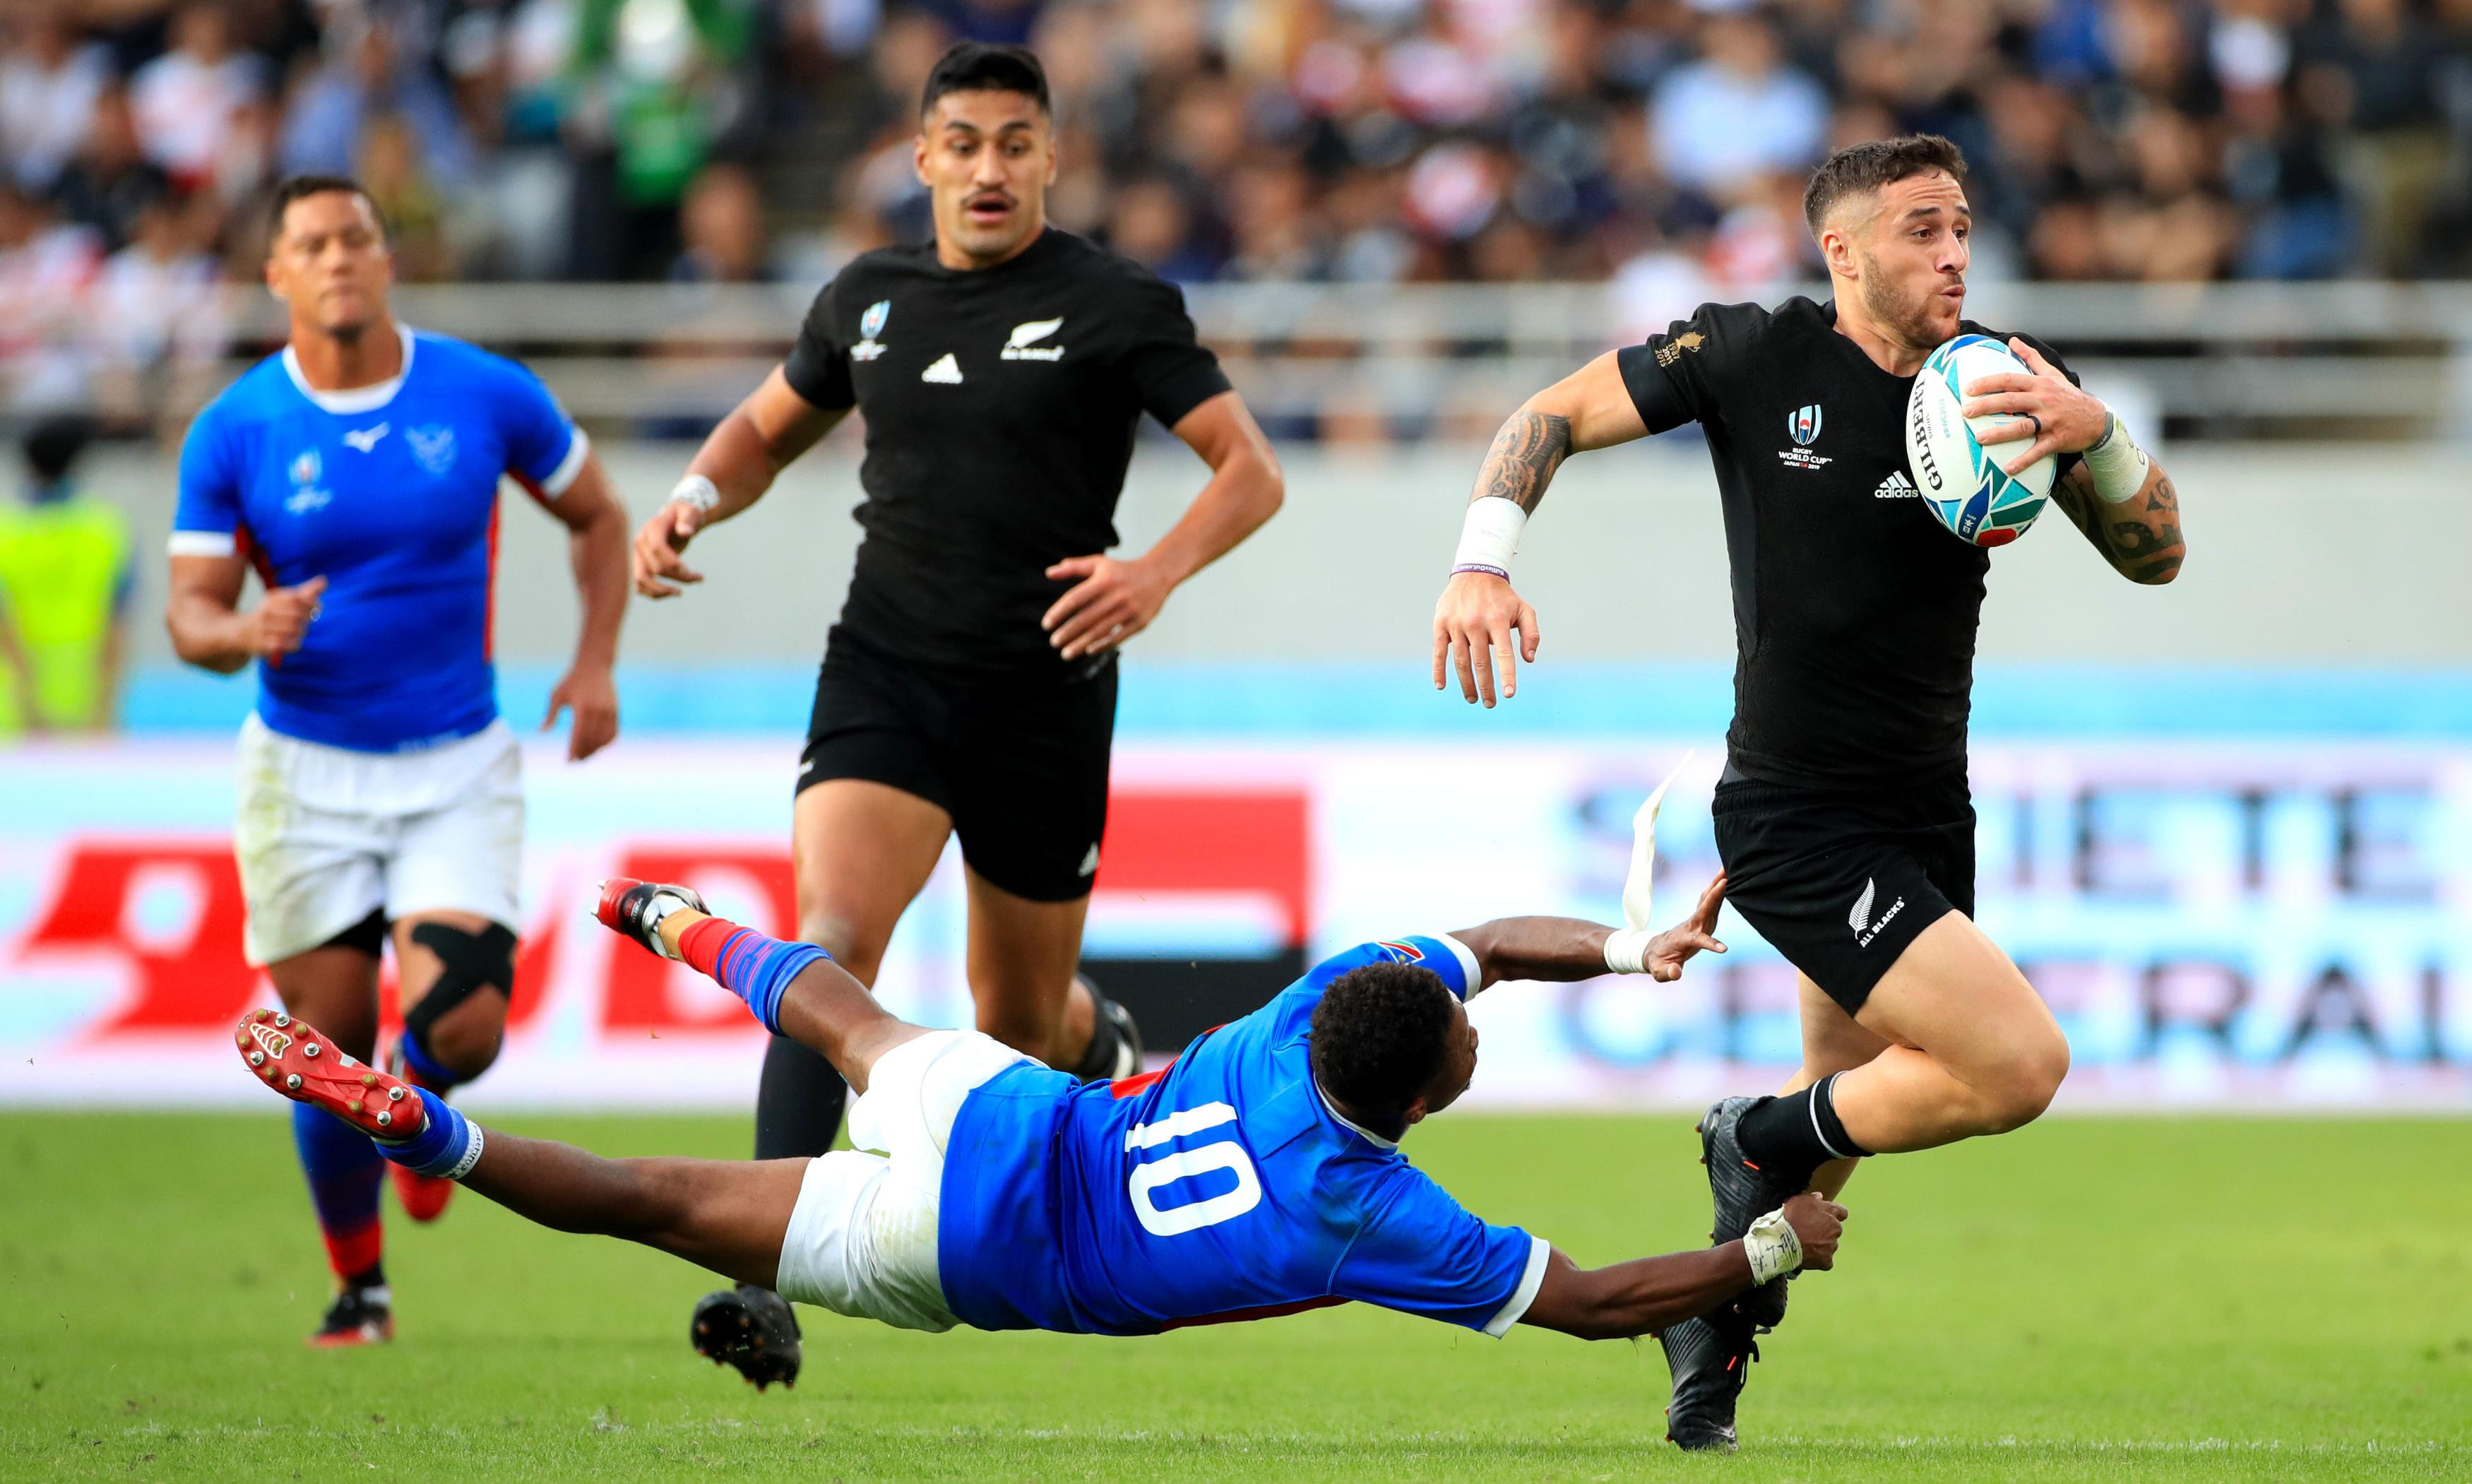 All Blacks fall behind before brushing aside brave Namibia at Rugby World Cup